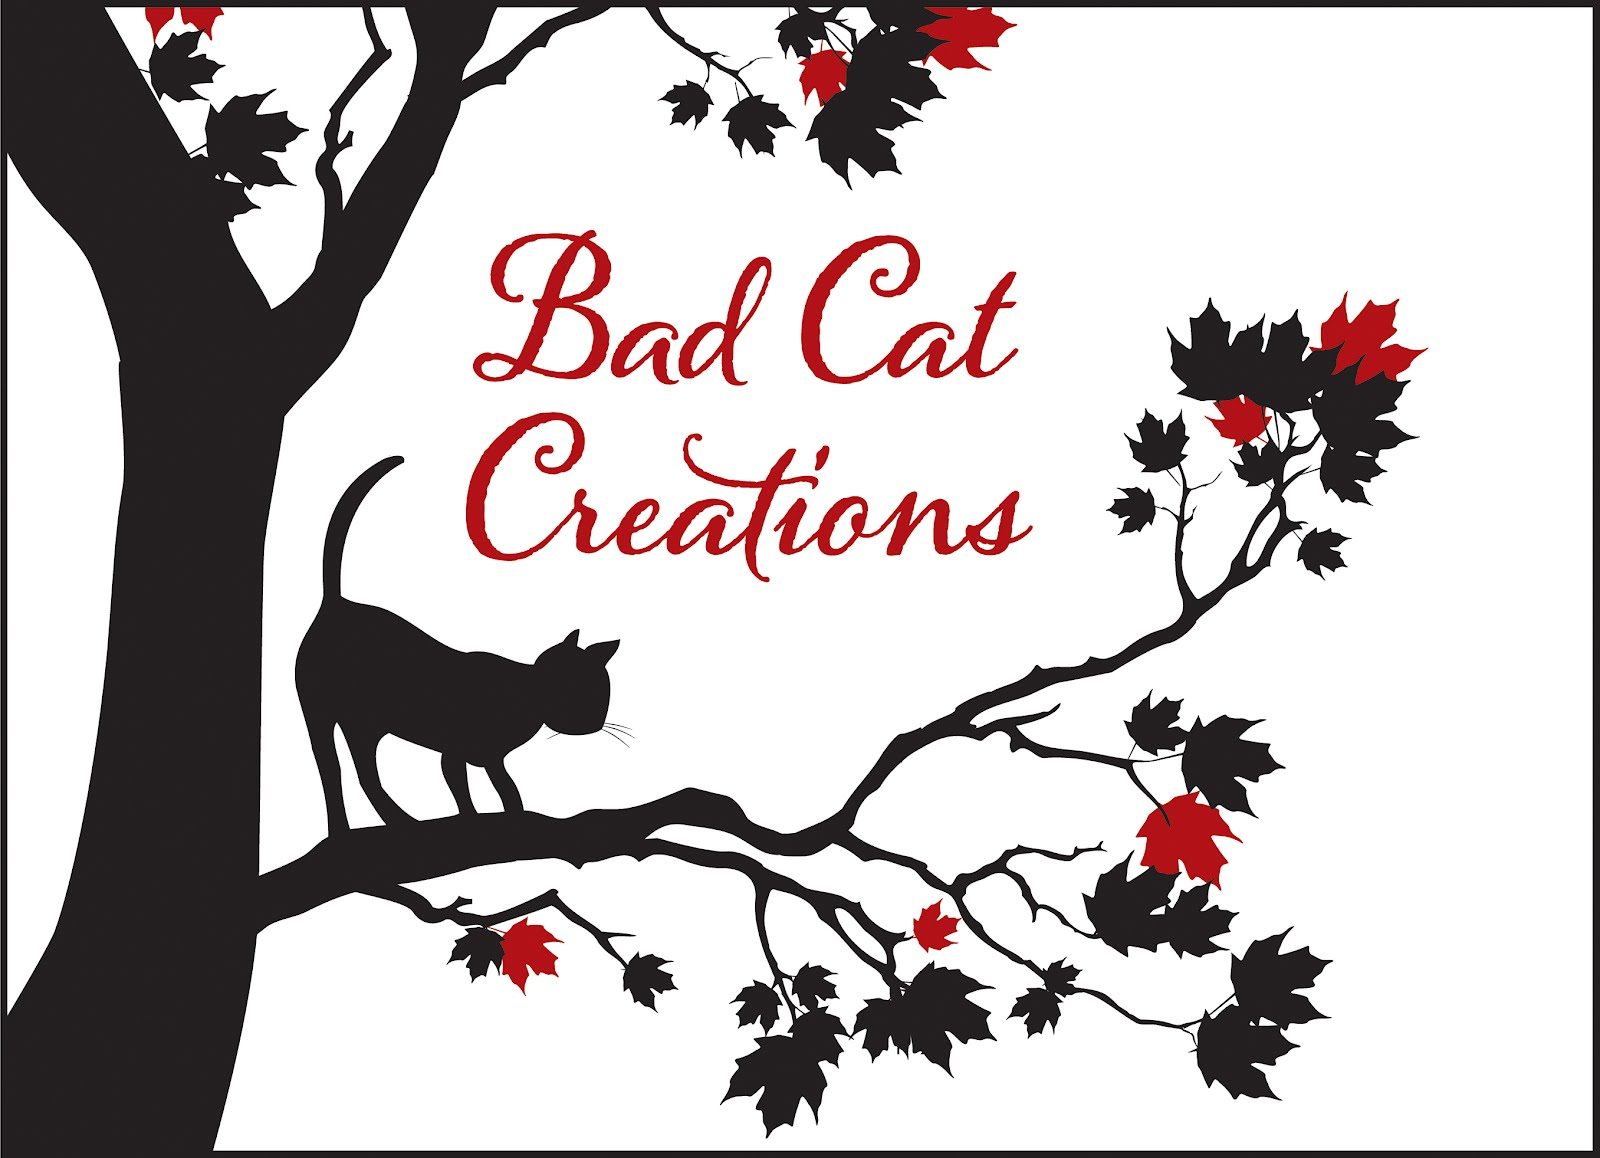 Bad Cat Creations